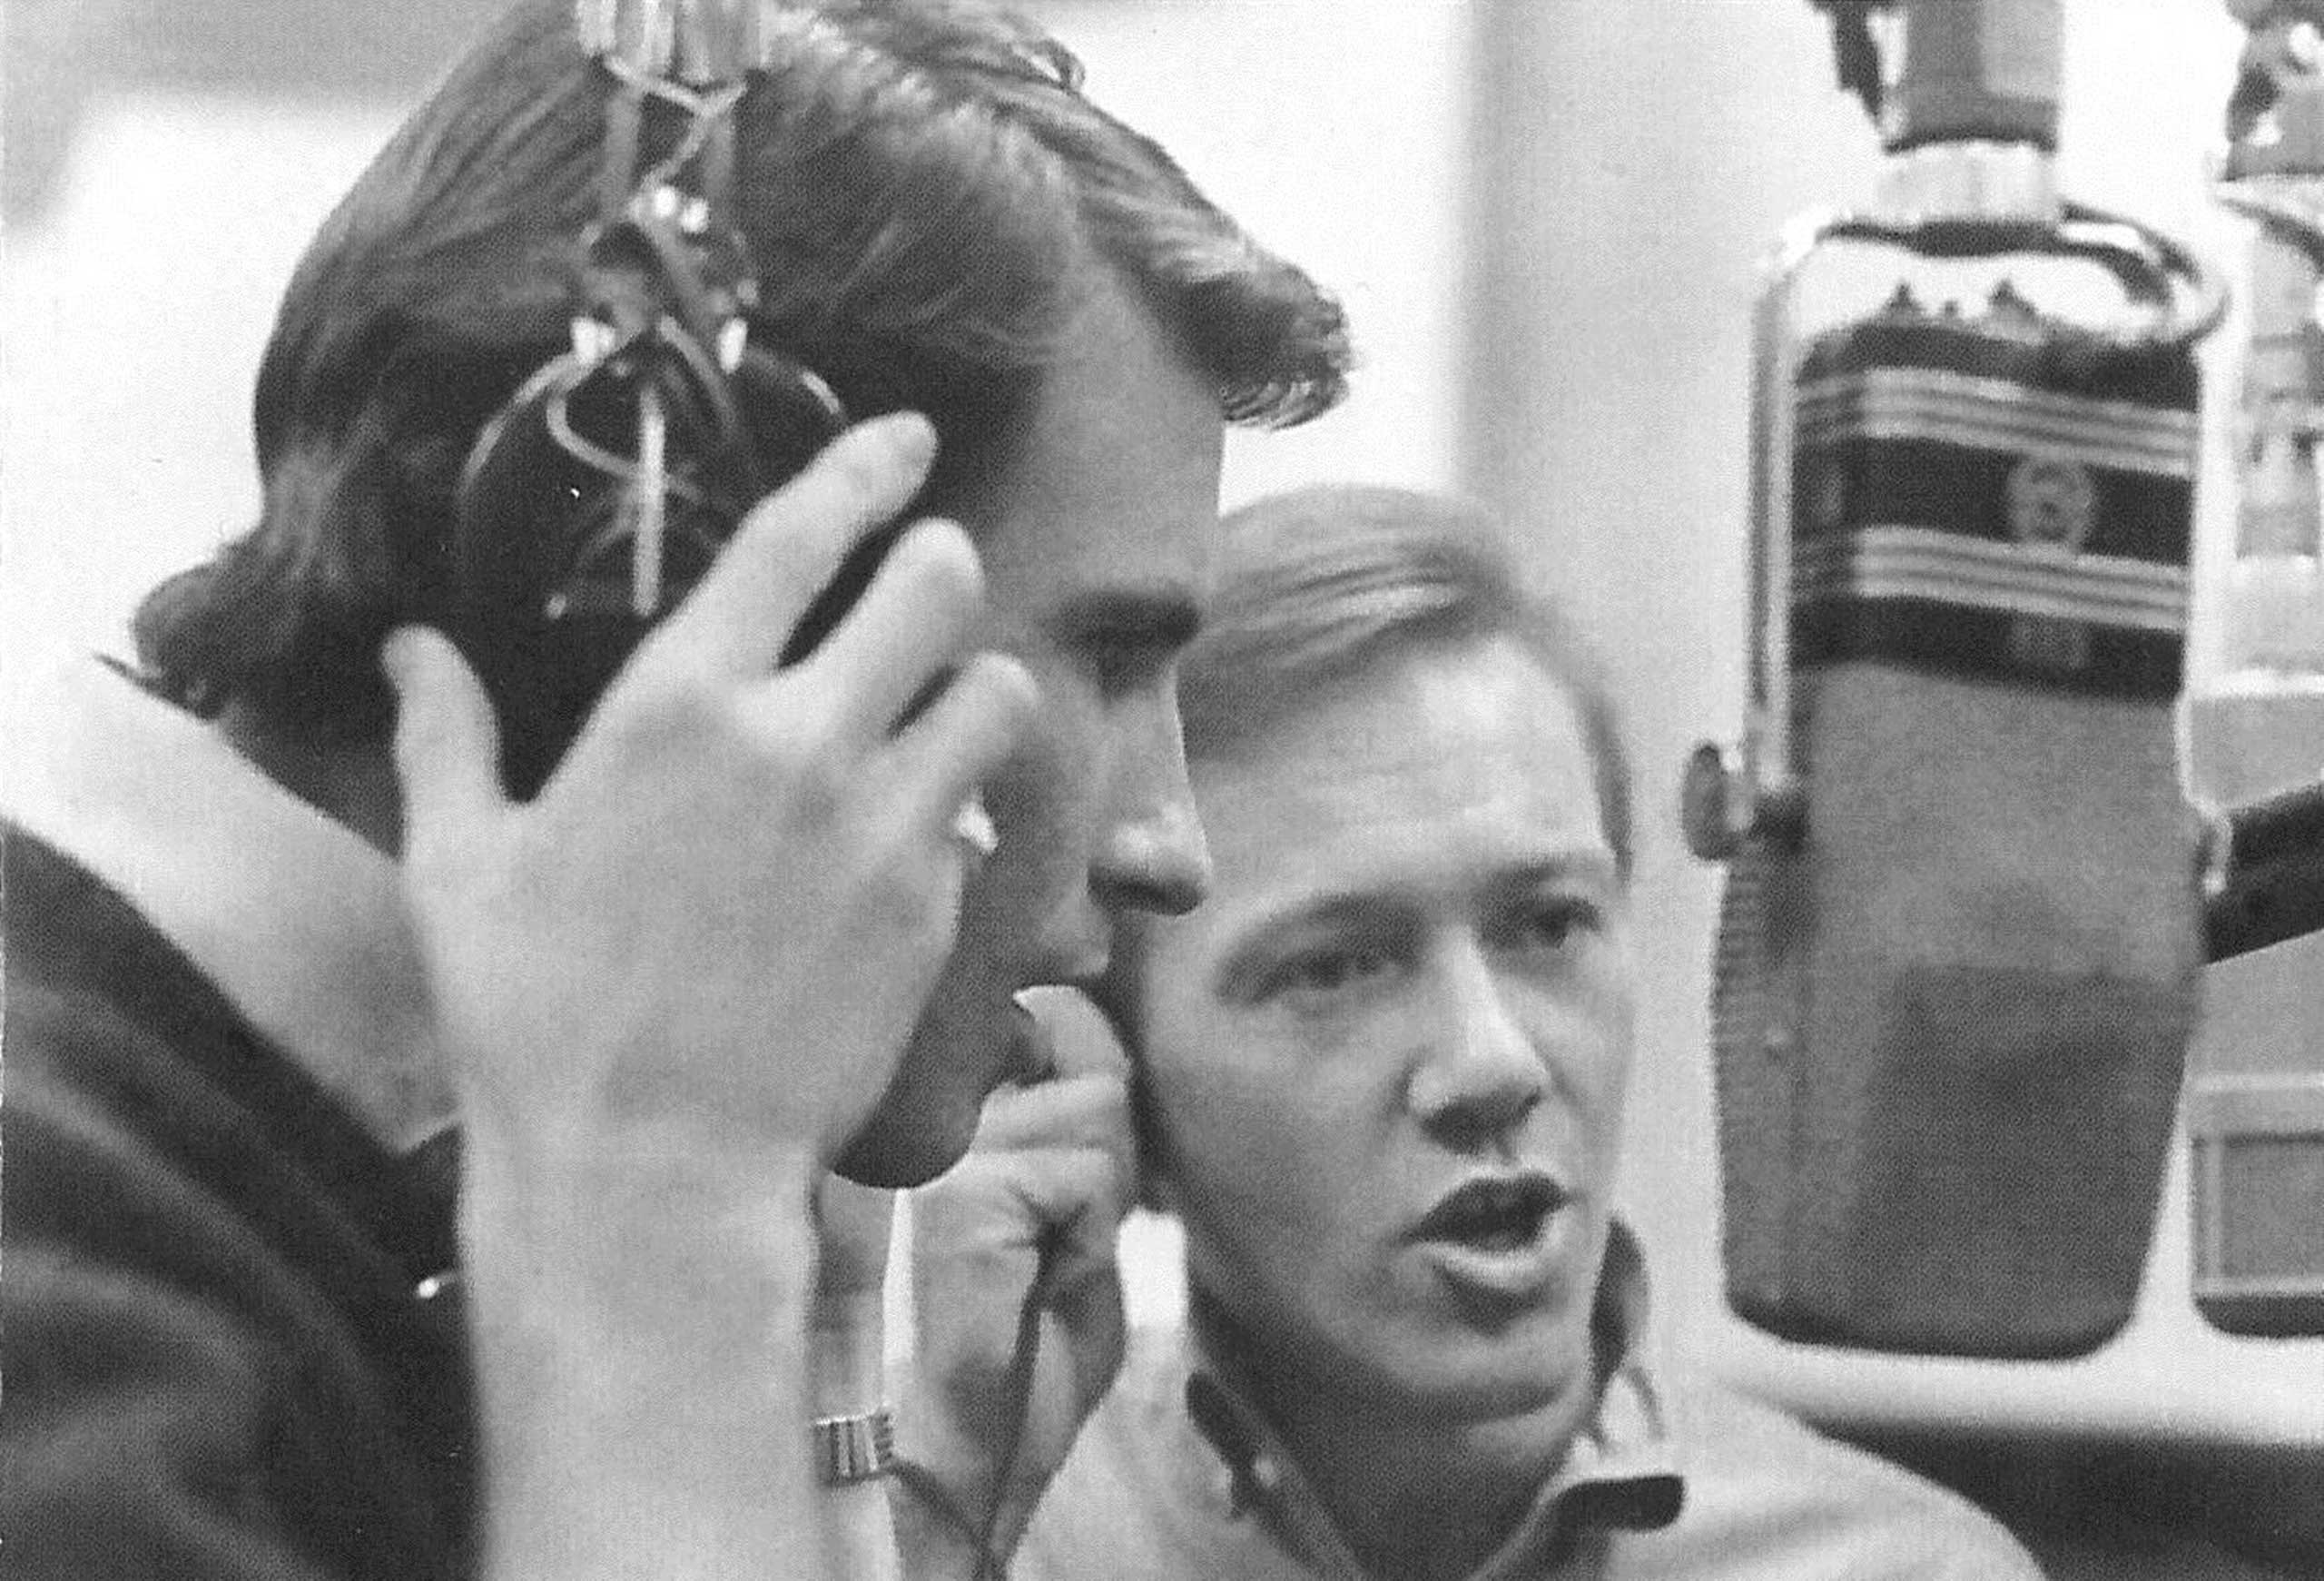 """The Righteous Brothers' """"You've Lost That Lovin' Feelin'"""" was among the most-played songs of the 20th century on radio and television. (Polydor/Library of Congress)"""